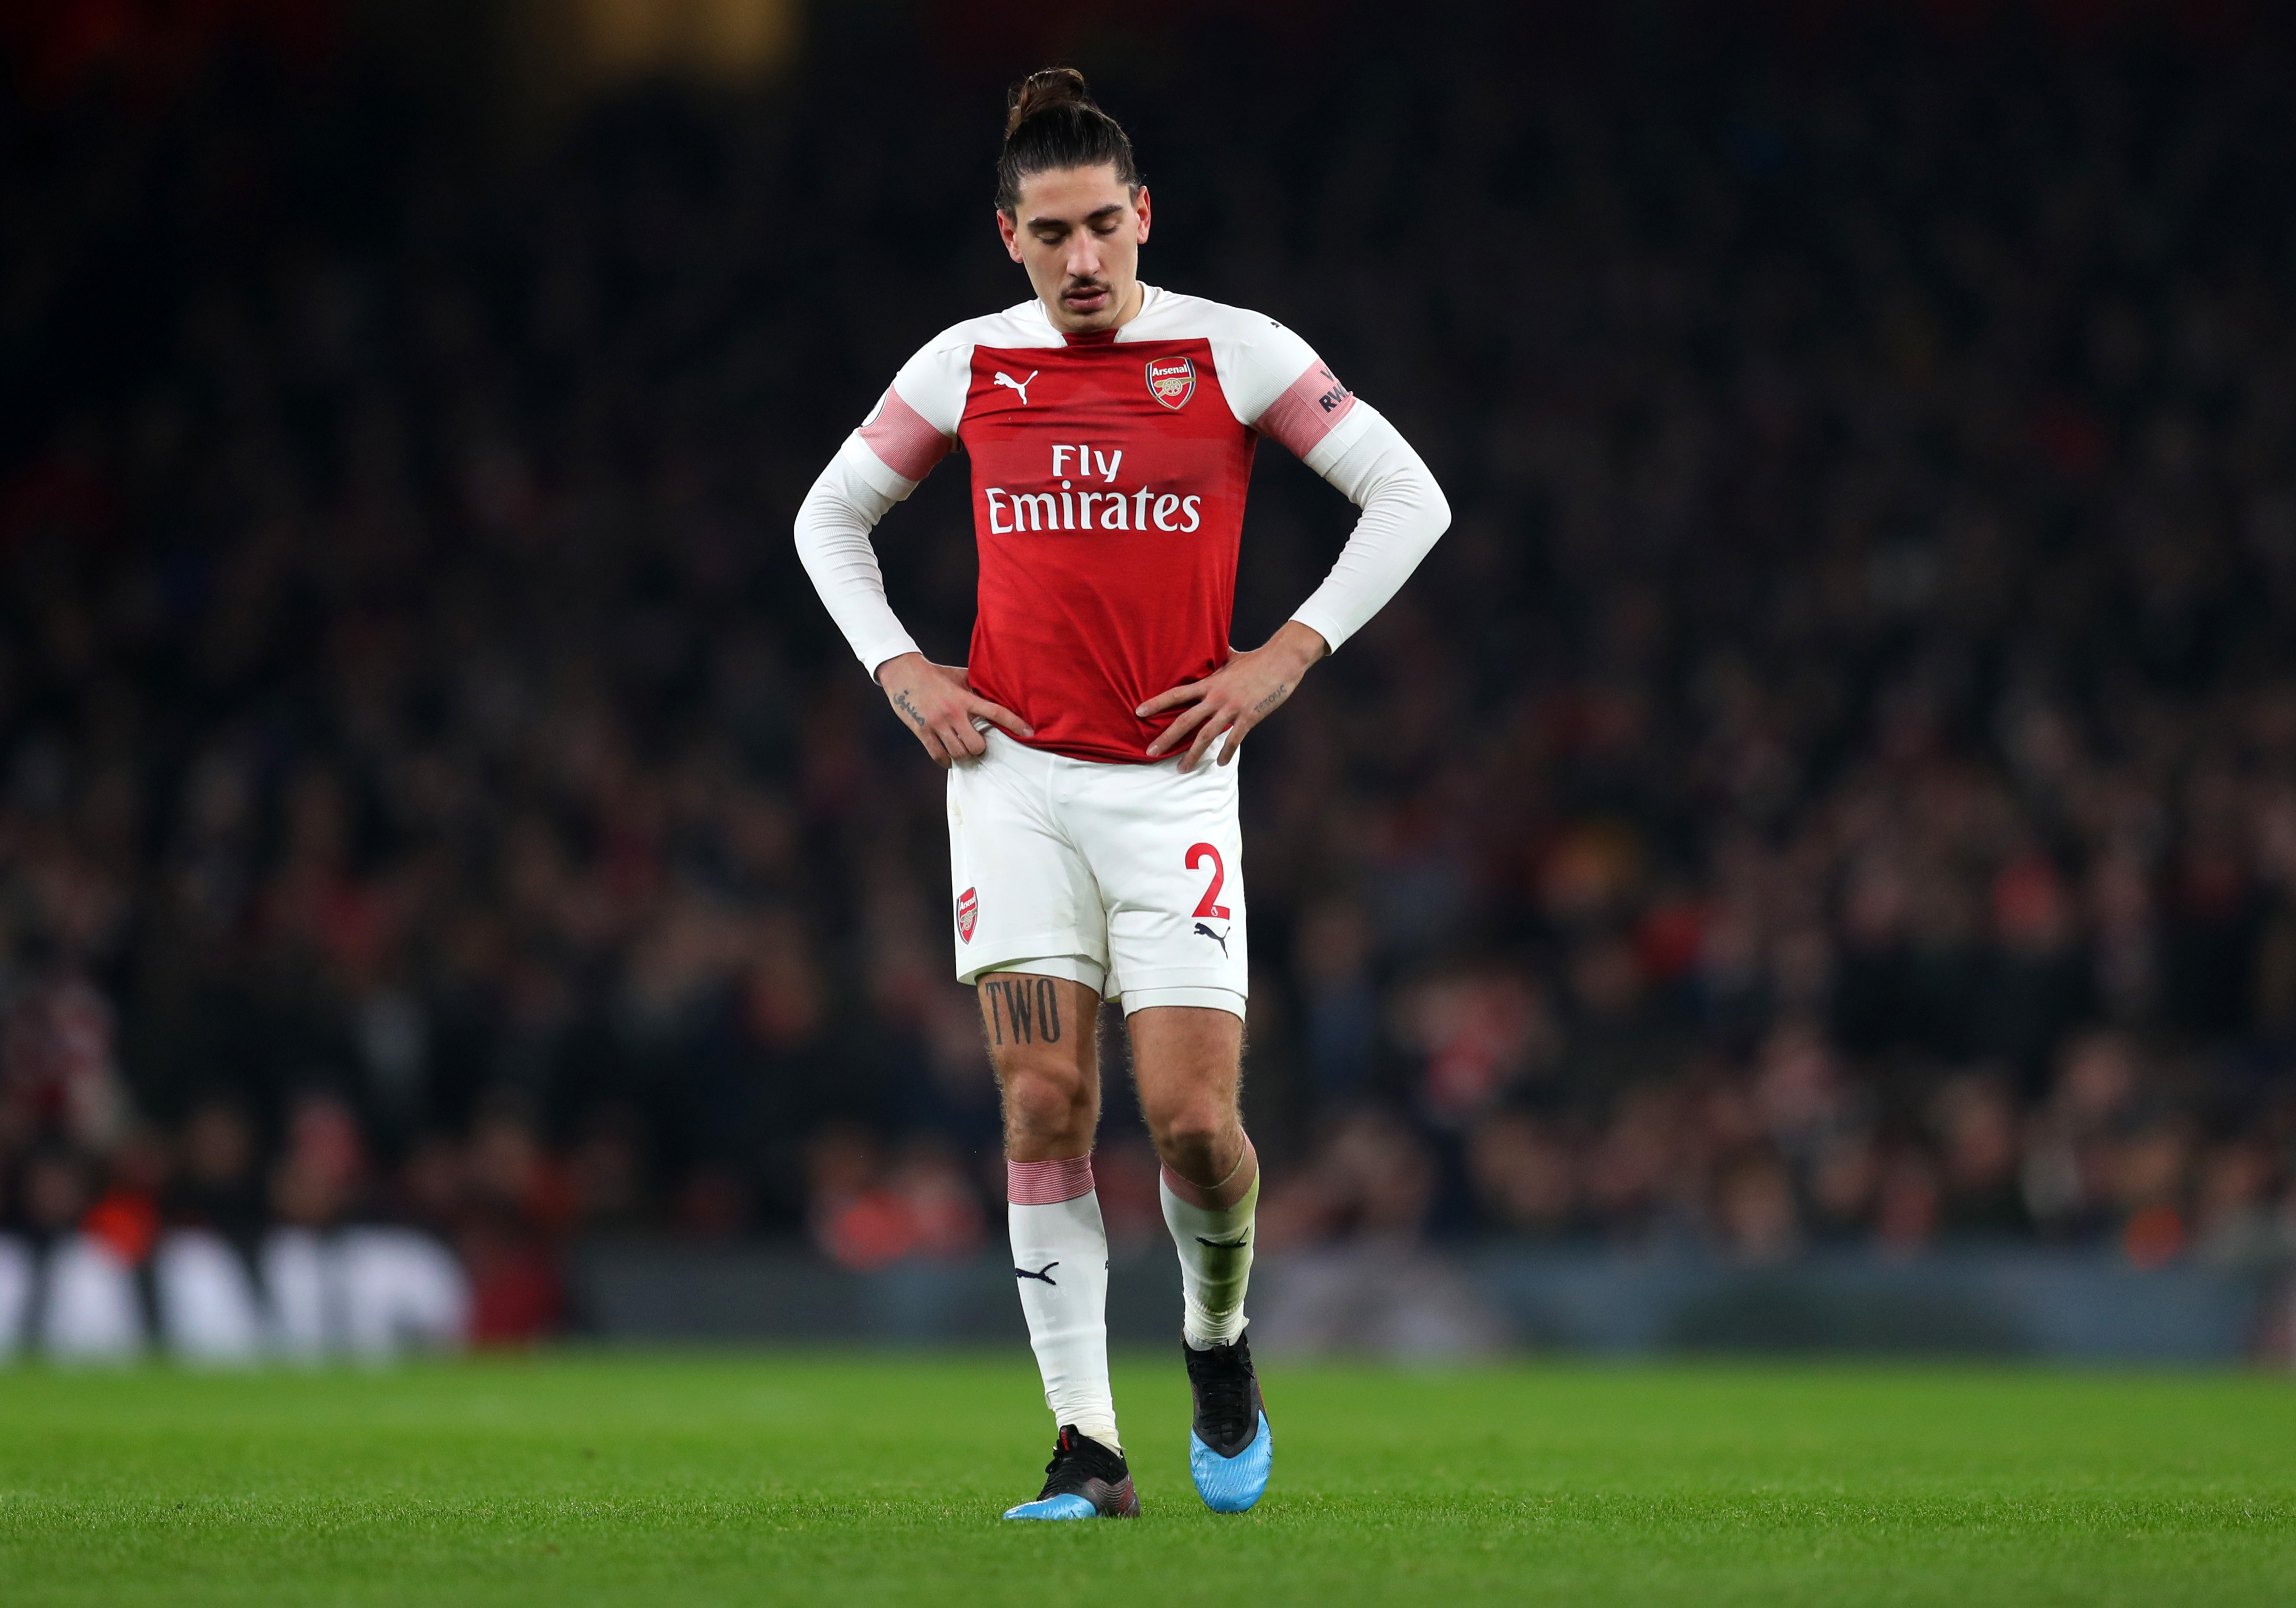 Bayern Munich have joined the race to sign Hector Bellerin - Injuries have ravaged his career.